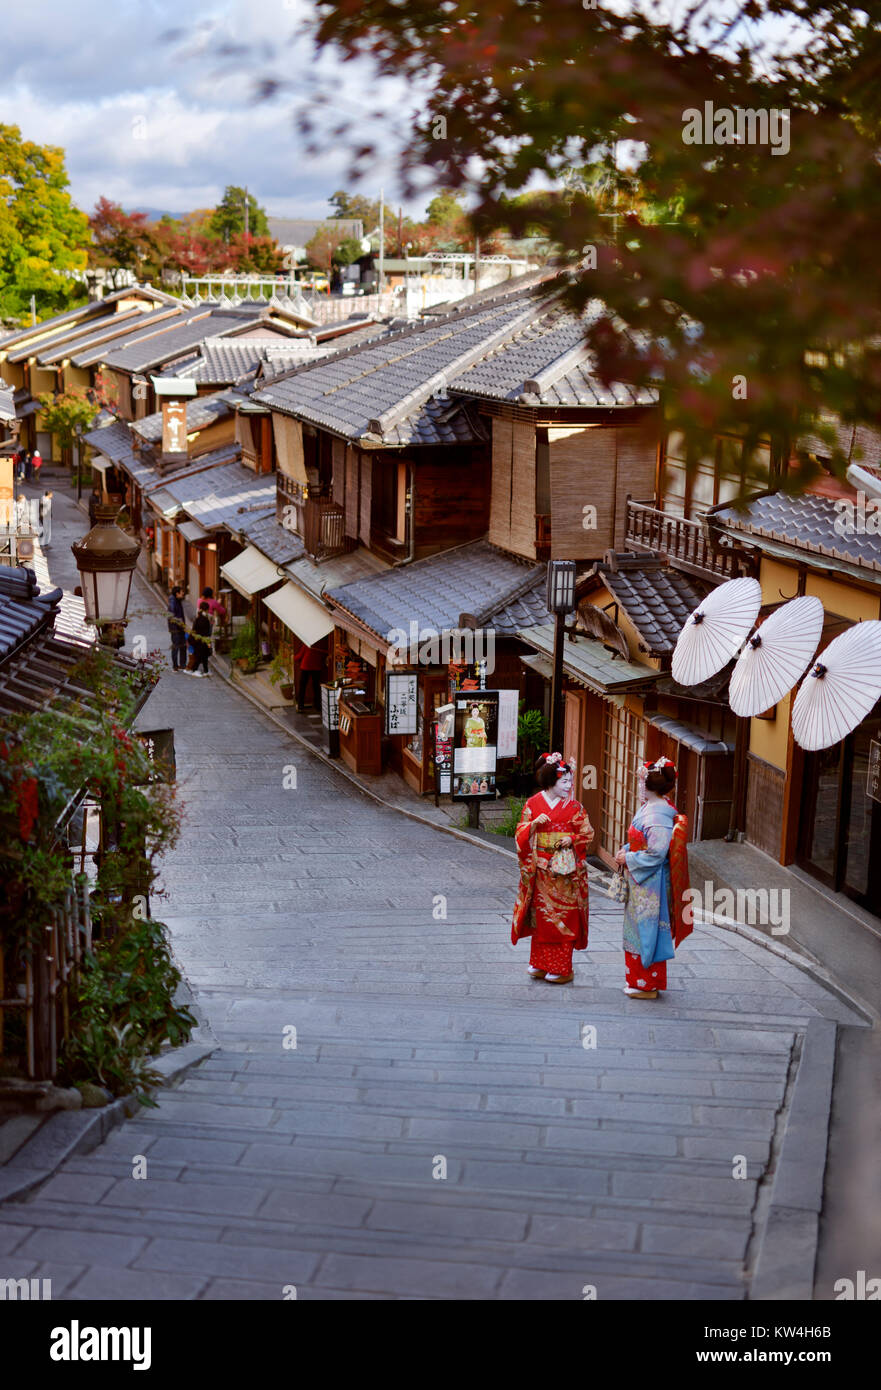 Two Maiko, Geisha apprentices in colorful kimono standing on an old street Yasaka dori in Kyoto, near Kiyomizu-dera - Stock Image